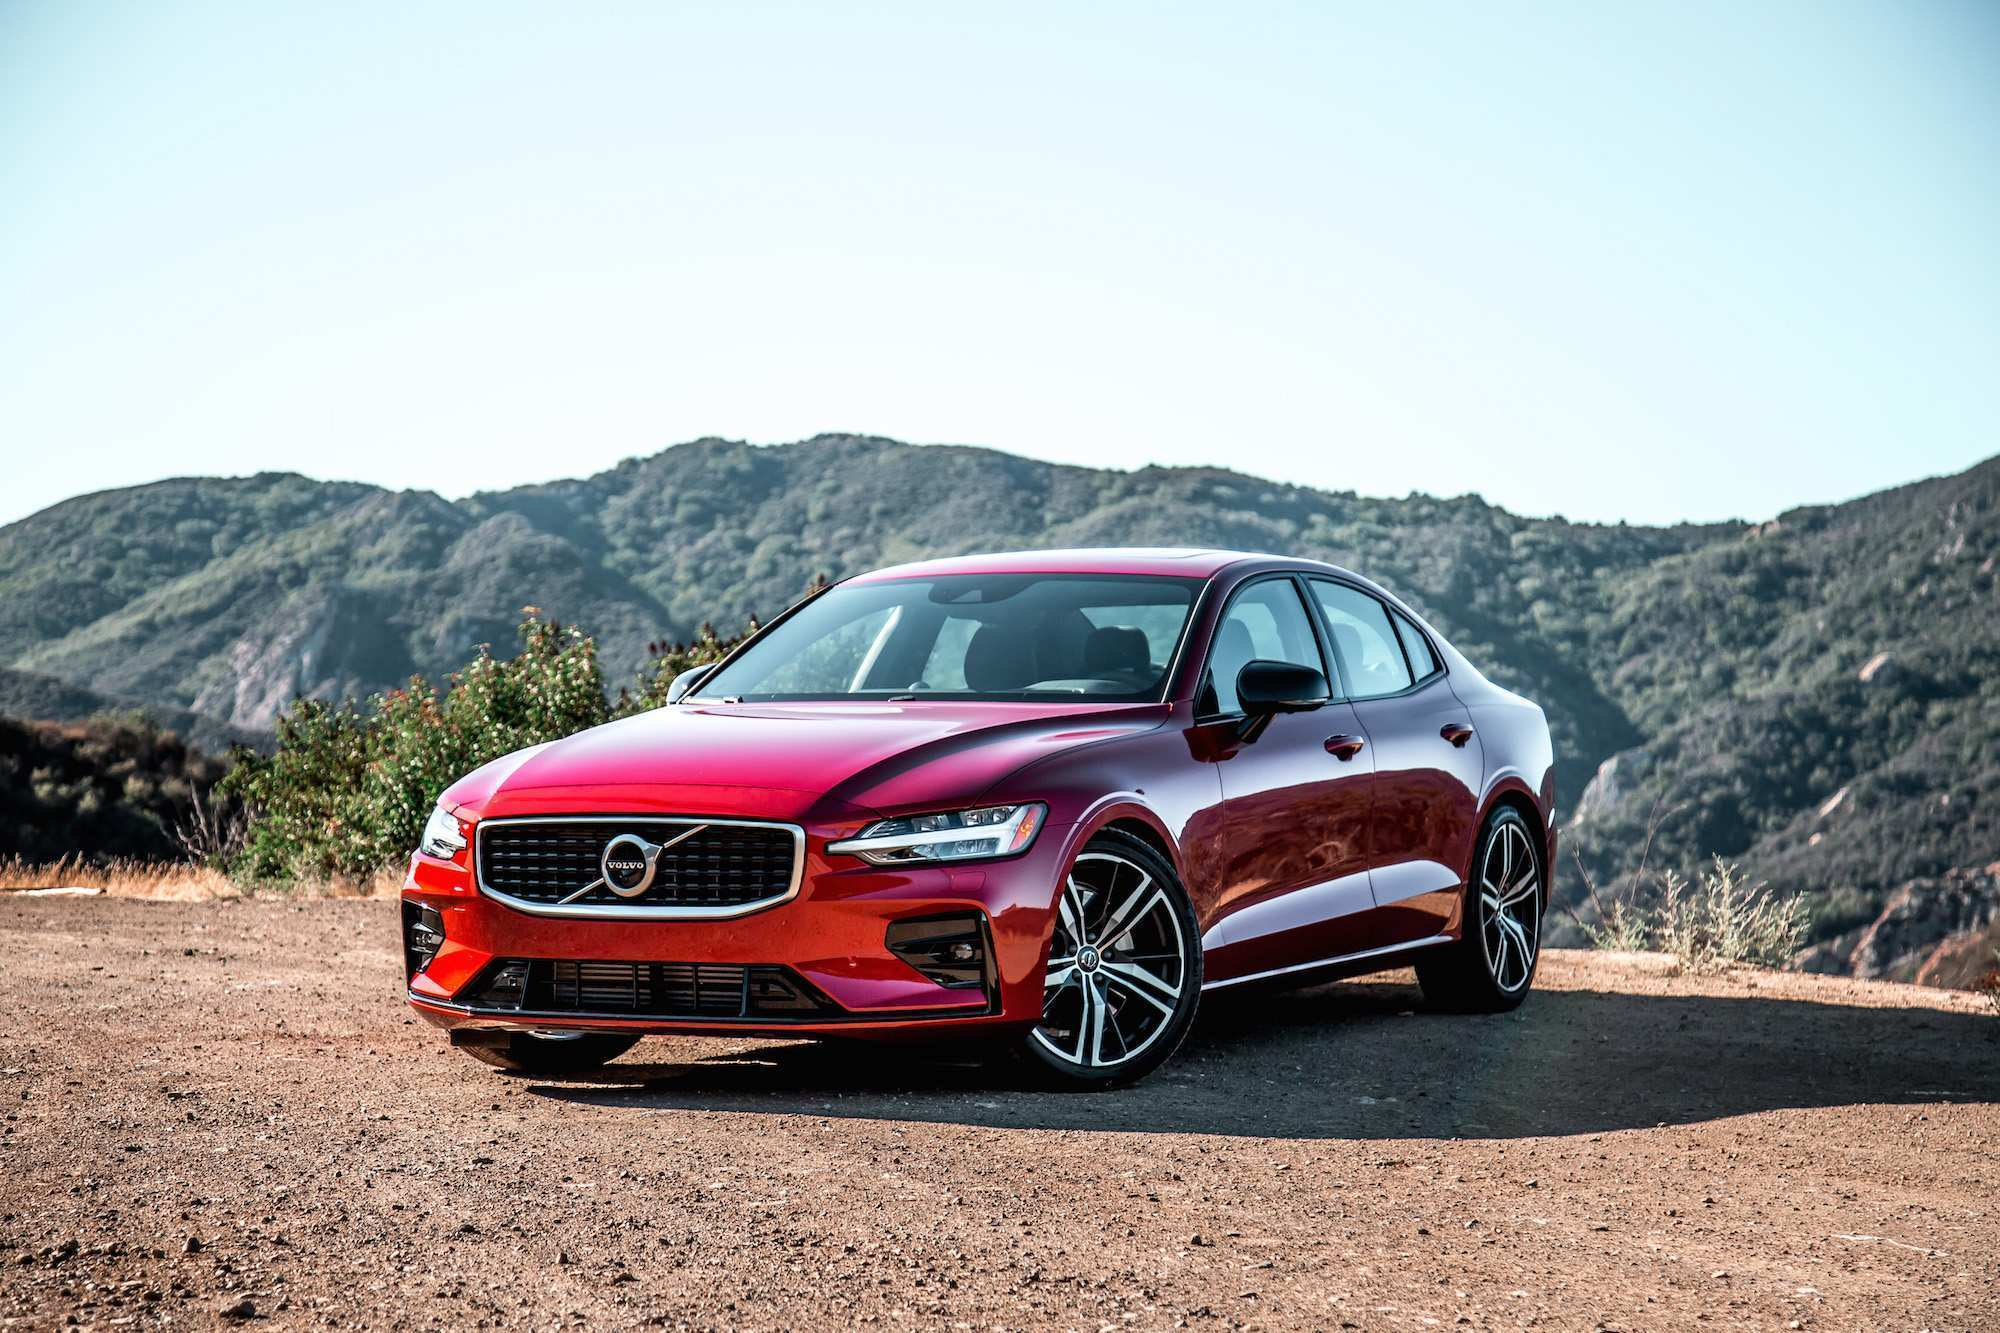 60 Great New S60 Volvo 2020 Exterior by New S60 Volvo 2020